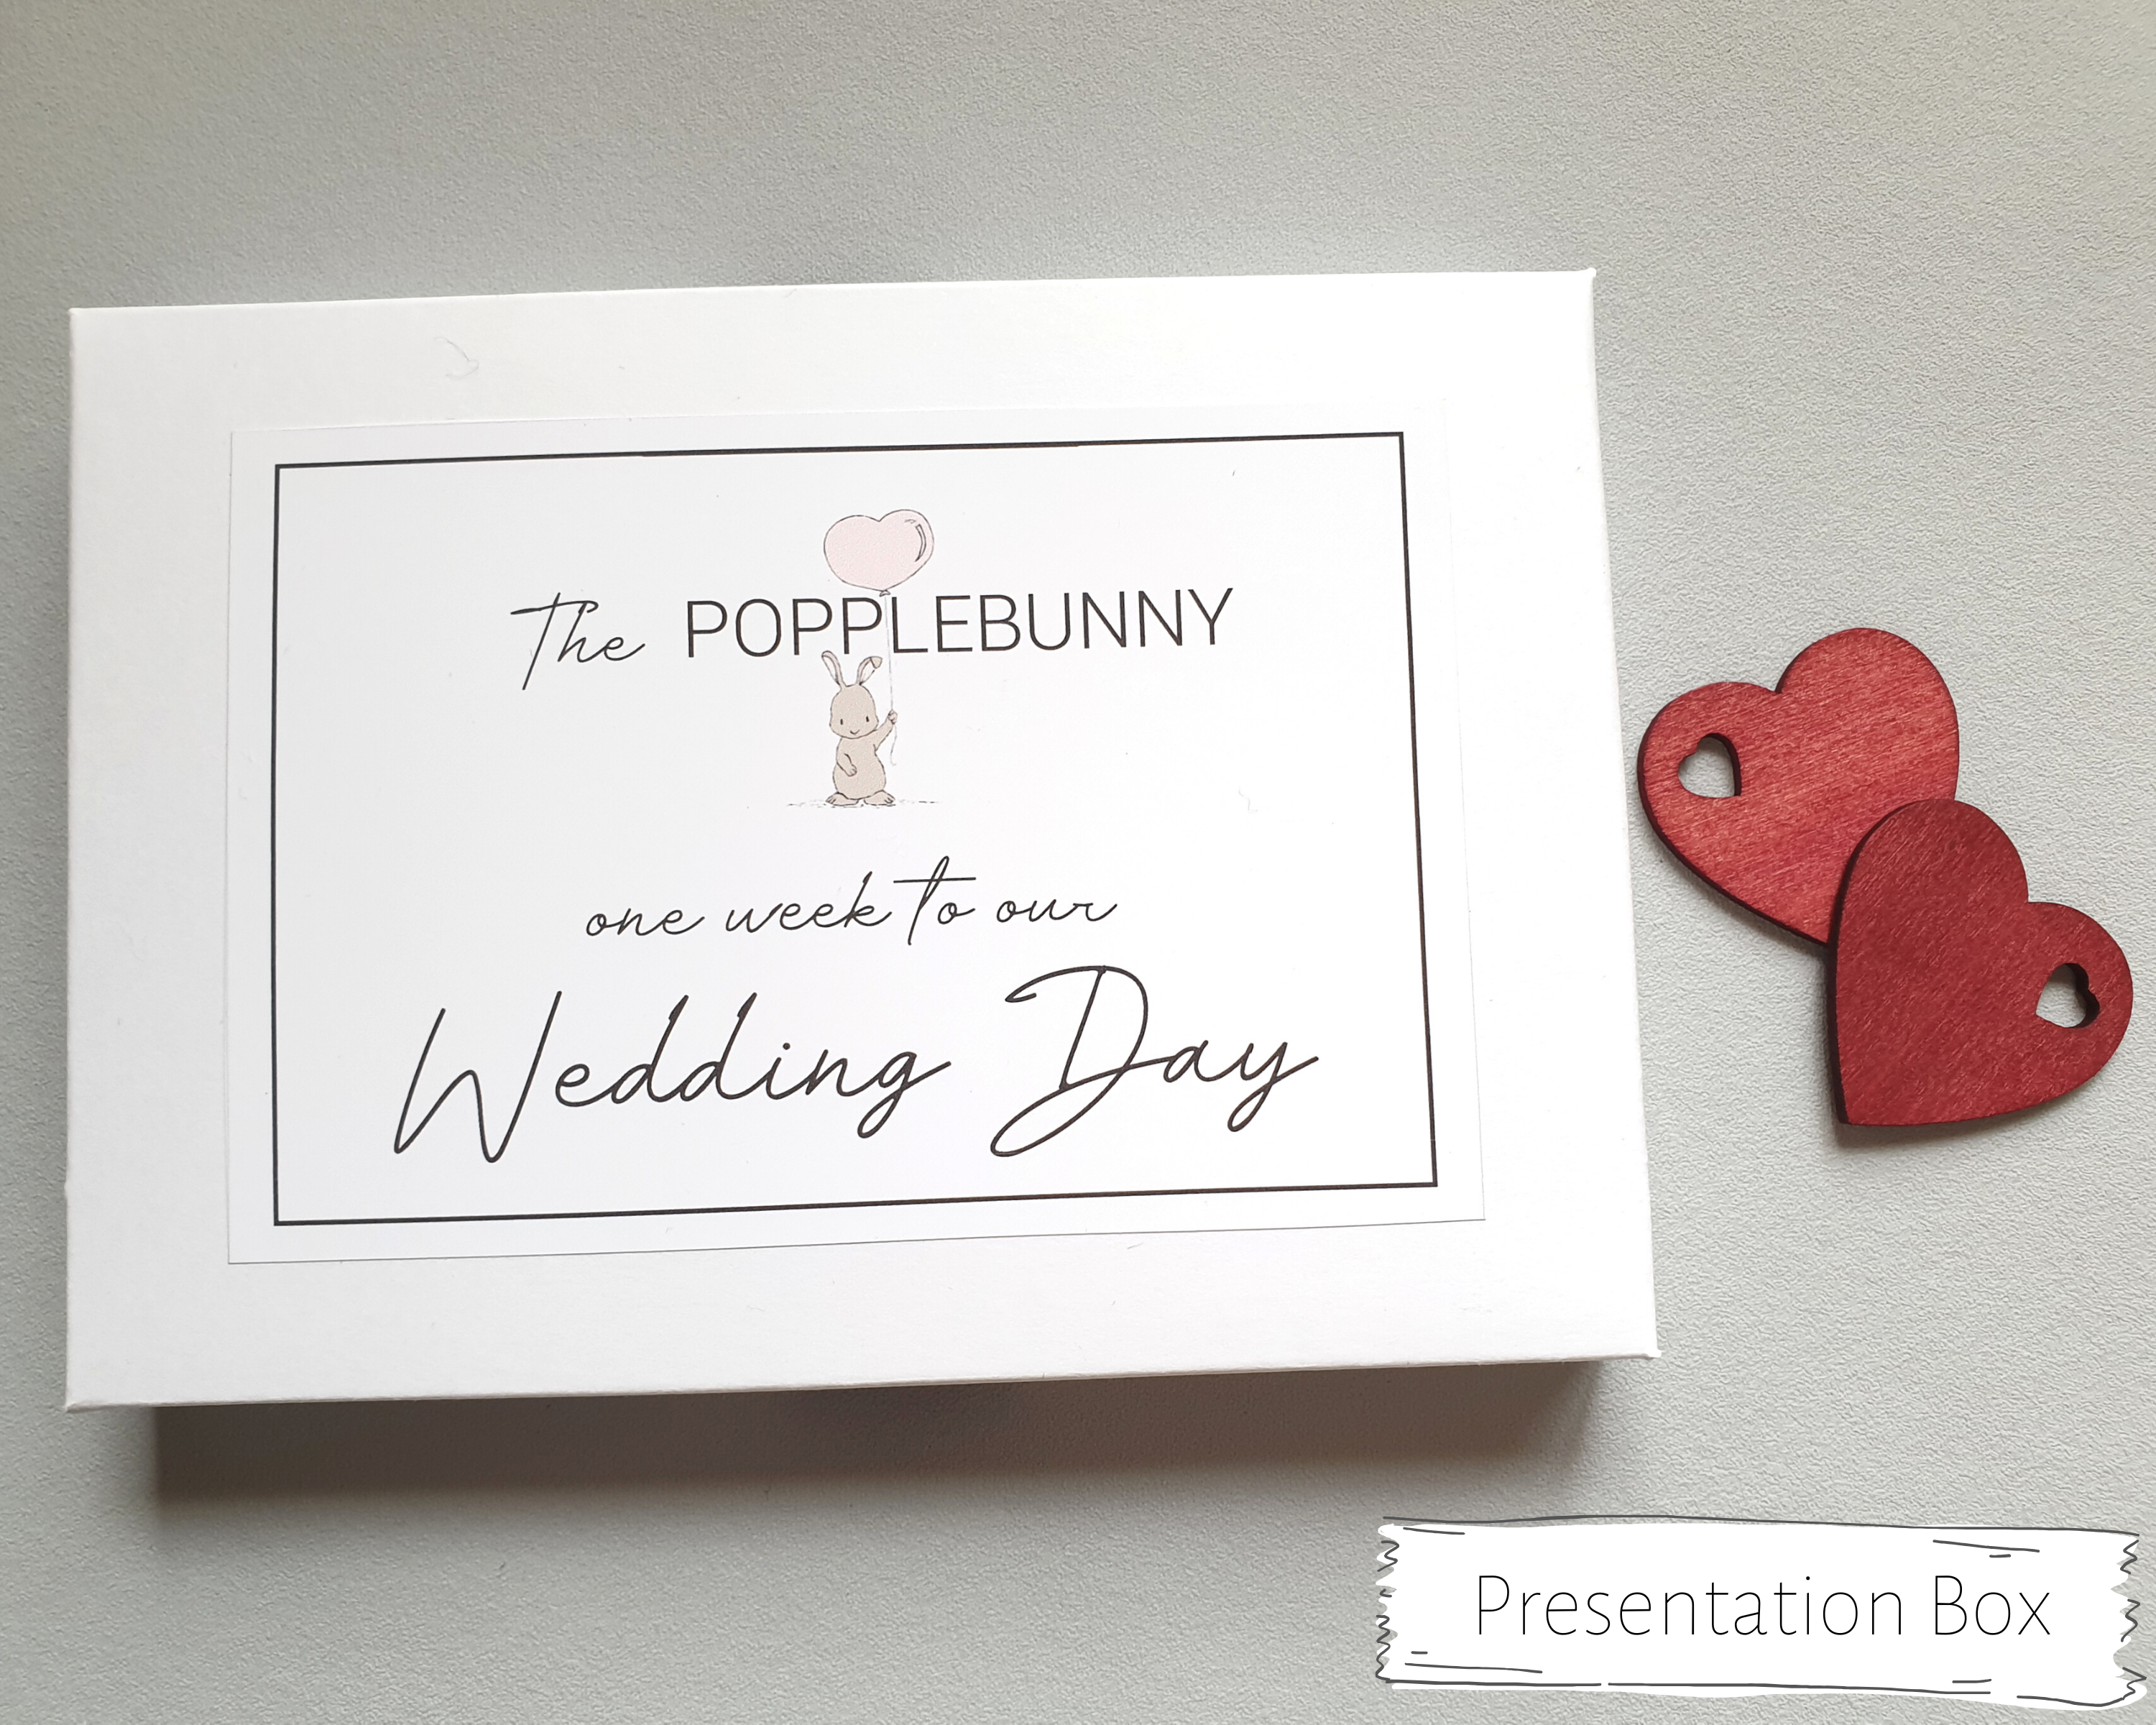 The white presentation box to keep the postcards safe with small bunny (the Popplebunny) illustration.